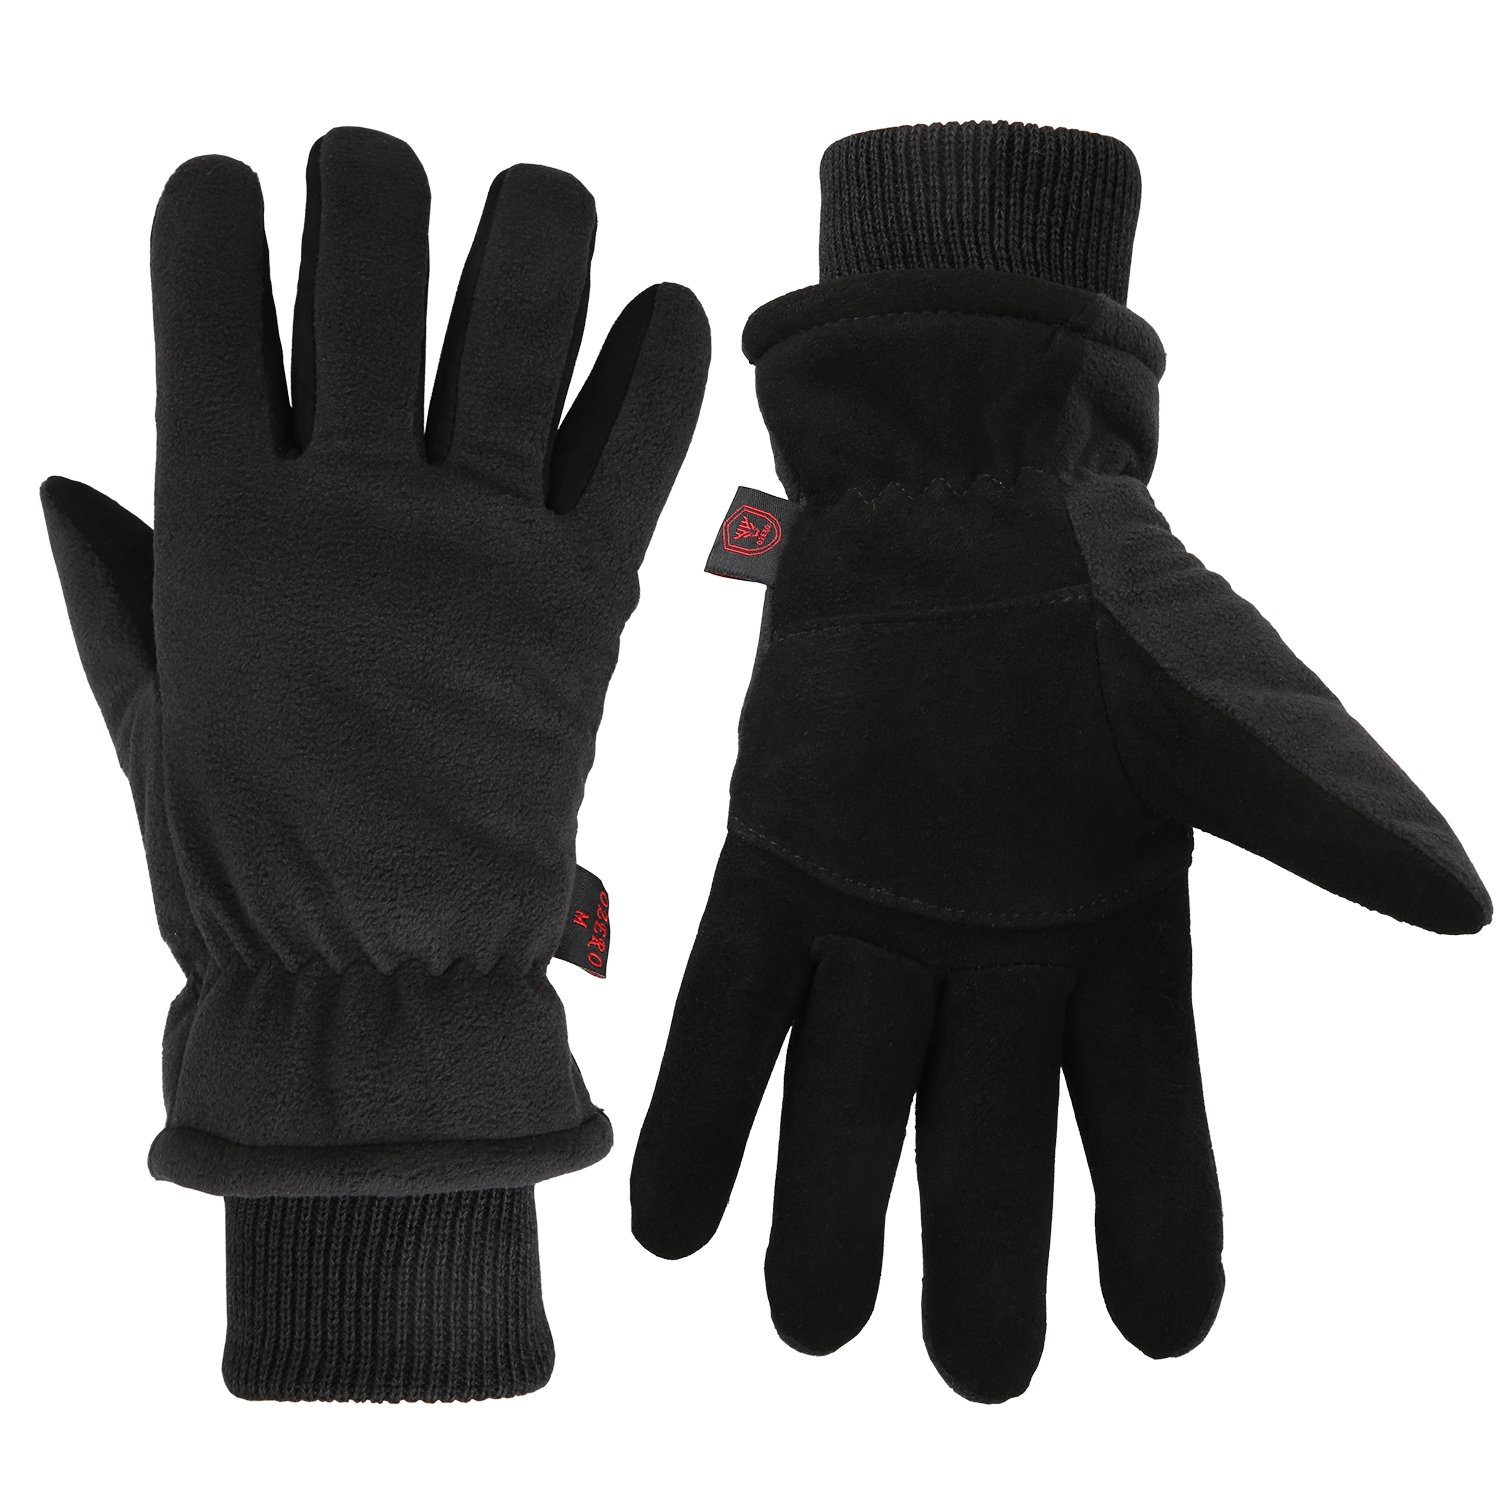 Men Winter -20°F Cold Proof Thermal Gloves, Deerskin Suede Leather Palm & Fleece